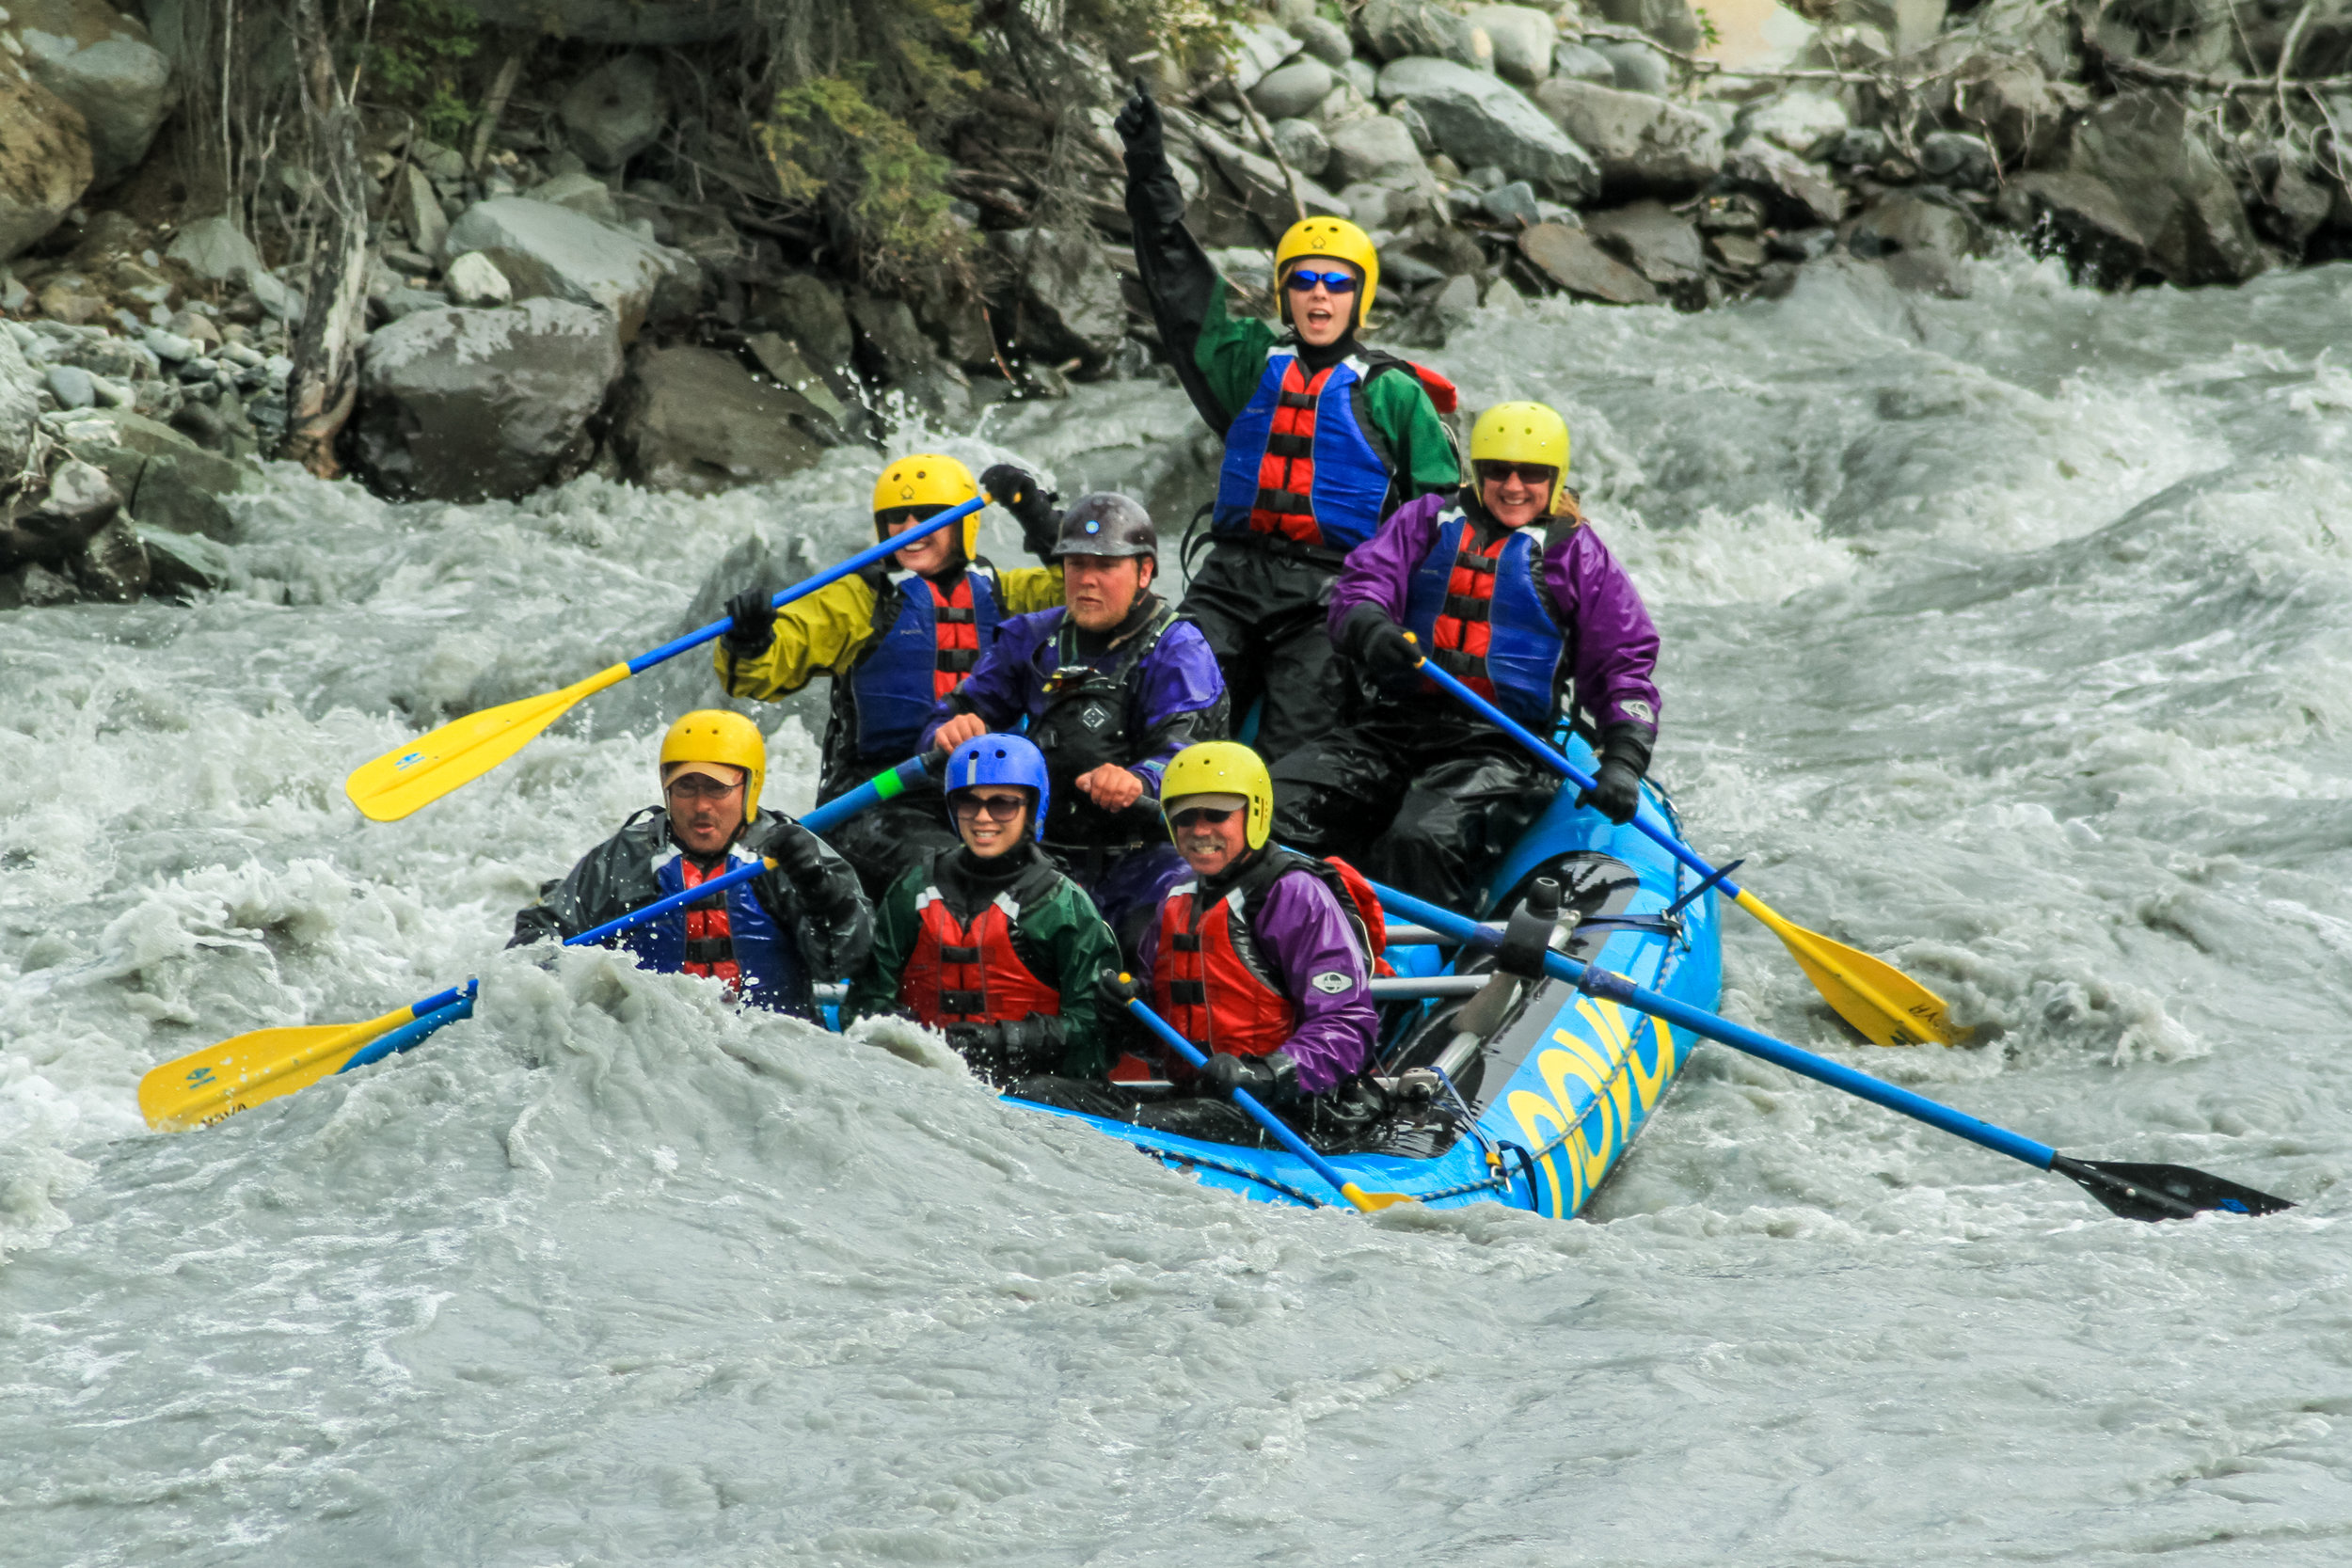 Rafting with Nova River Rafters.